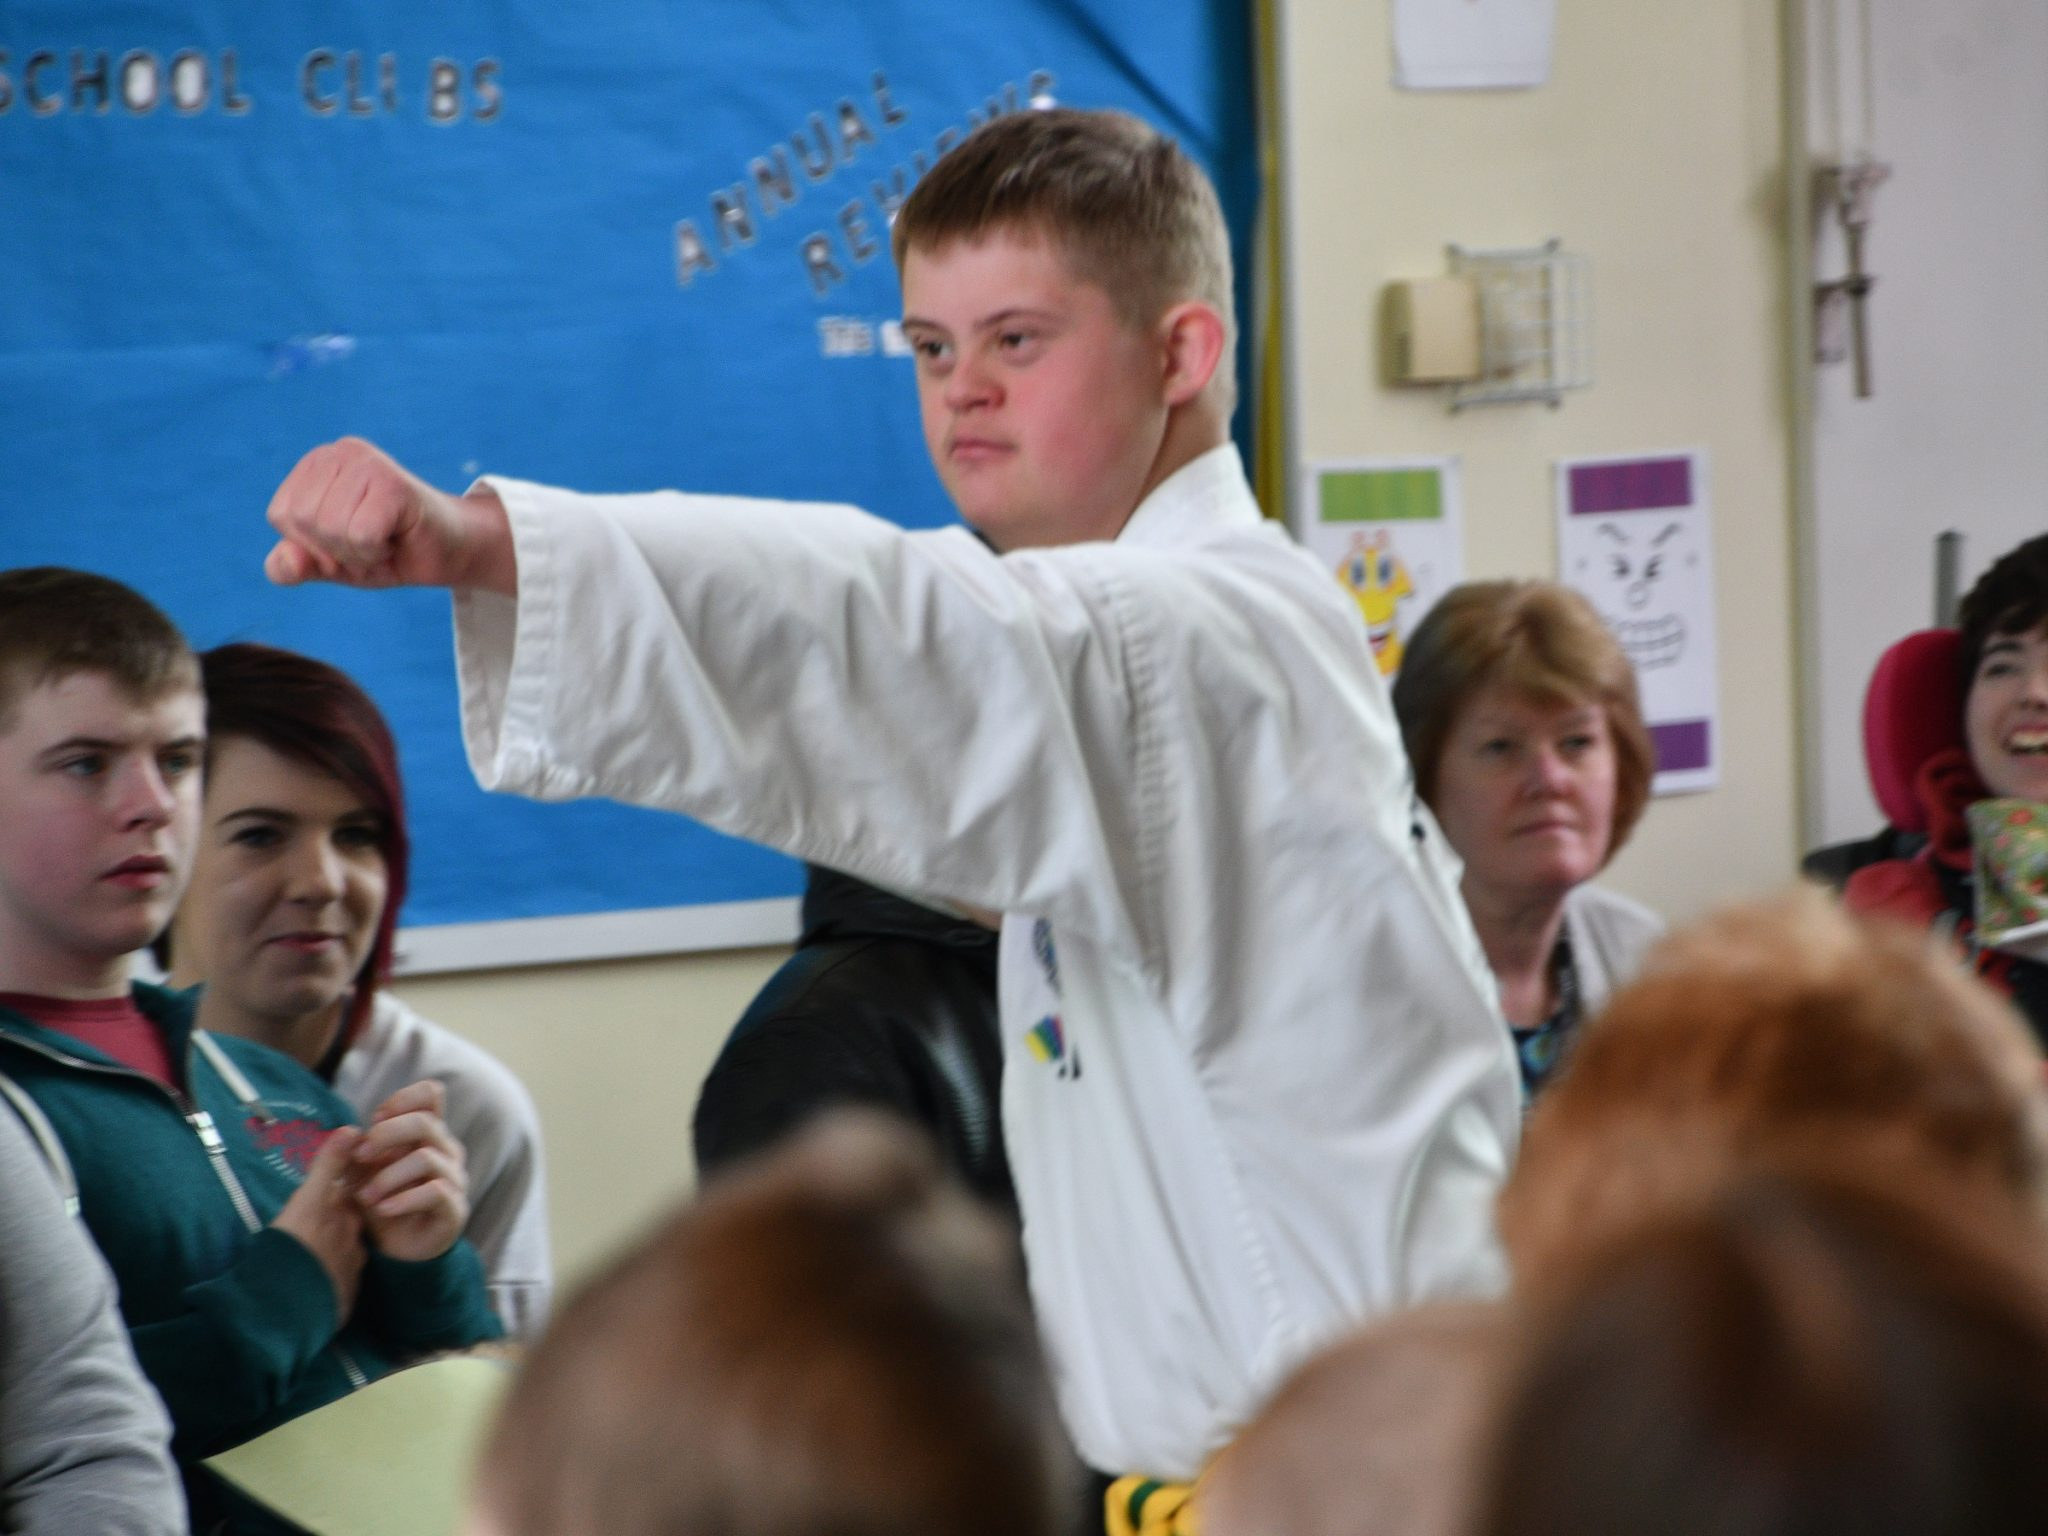 Local Tae Kwon Do group packs a punch for Uplands pupils